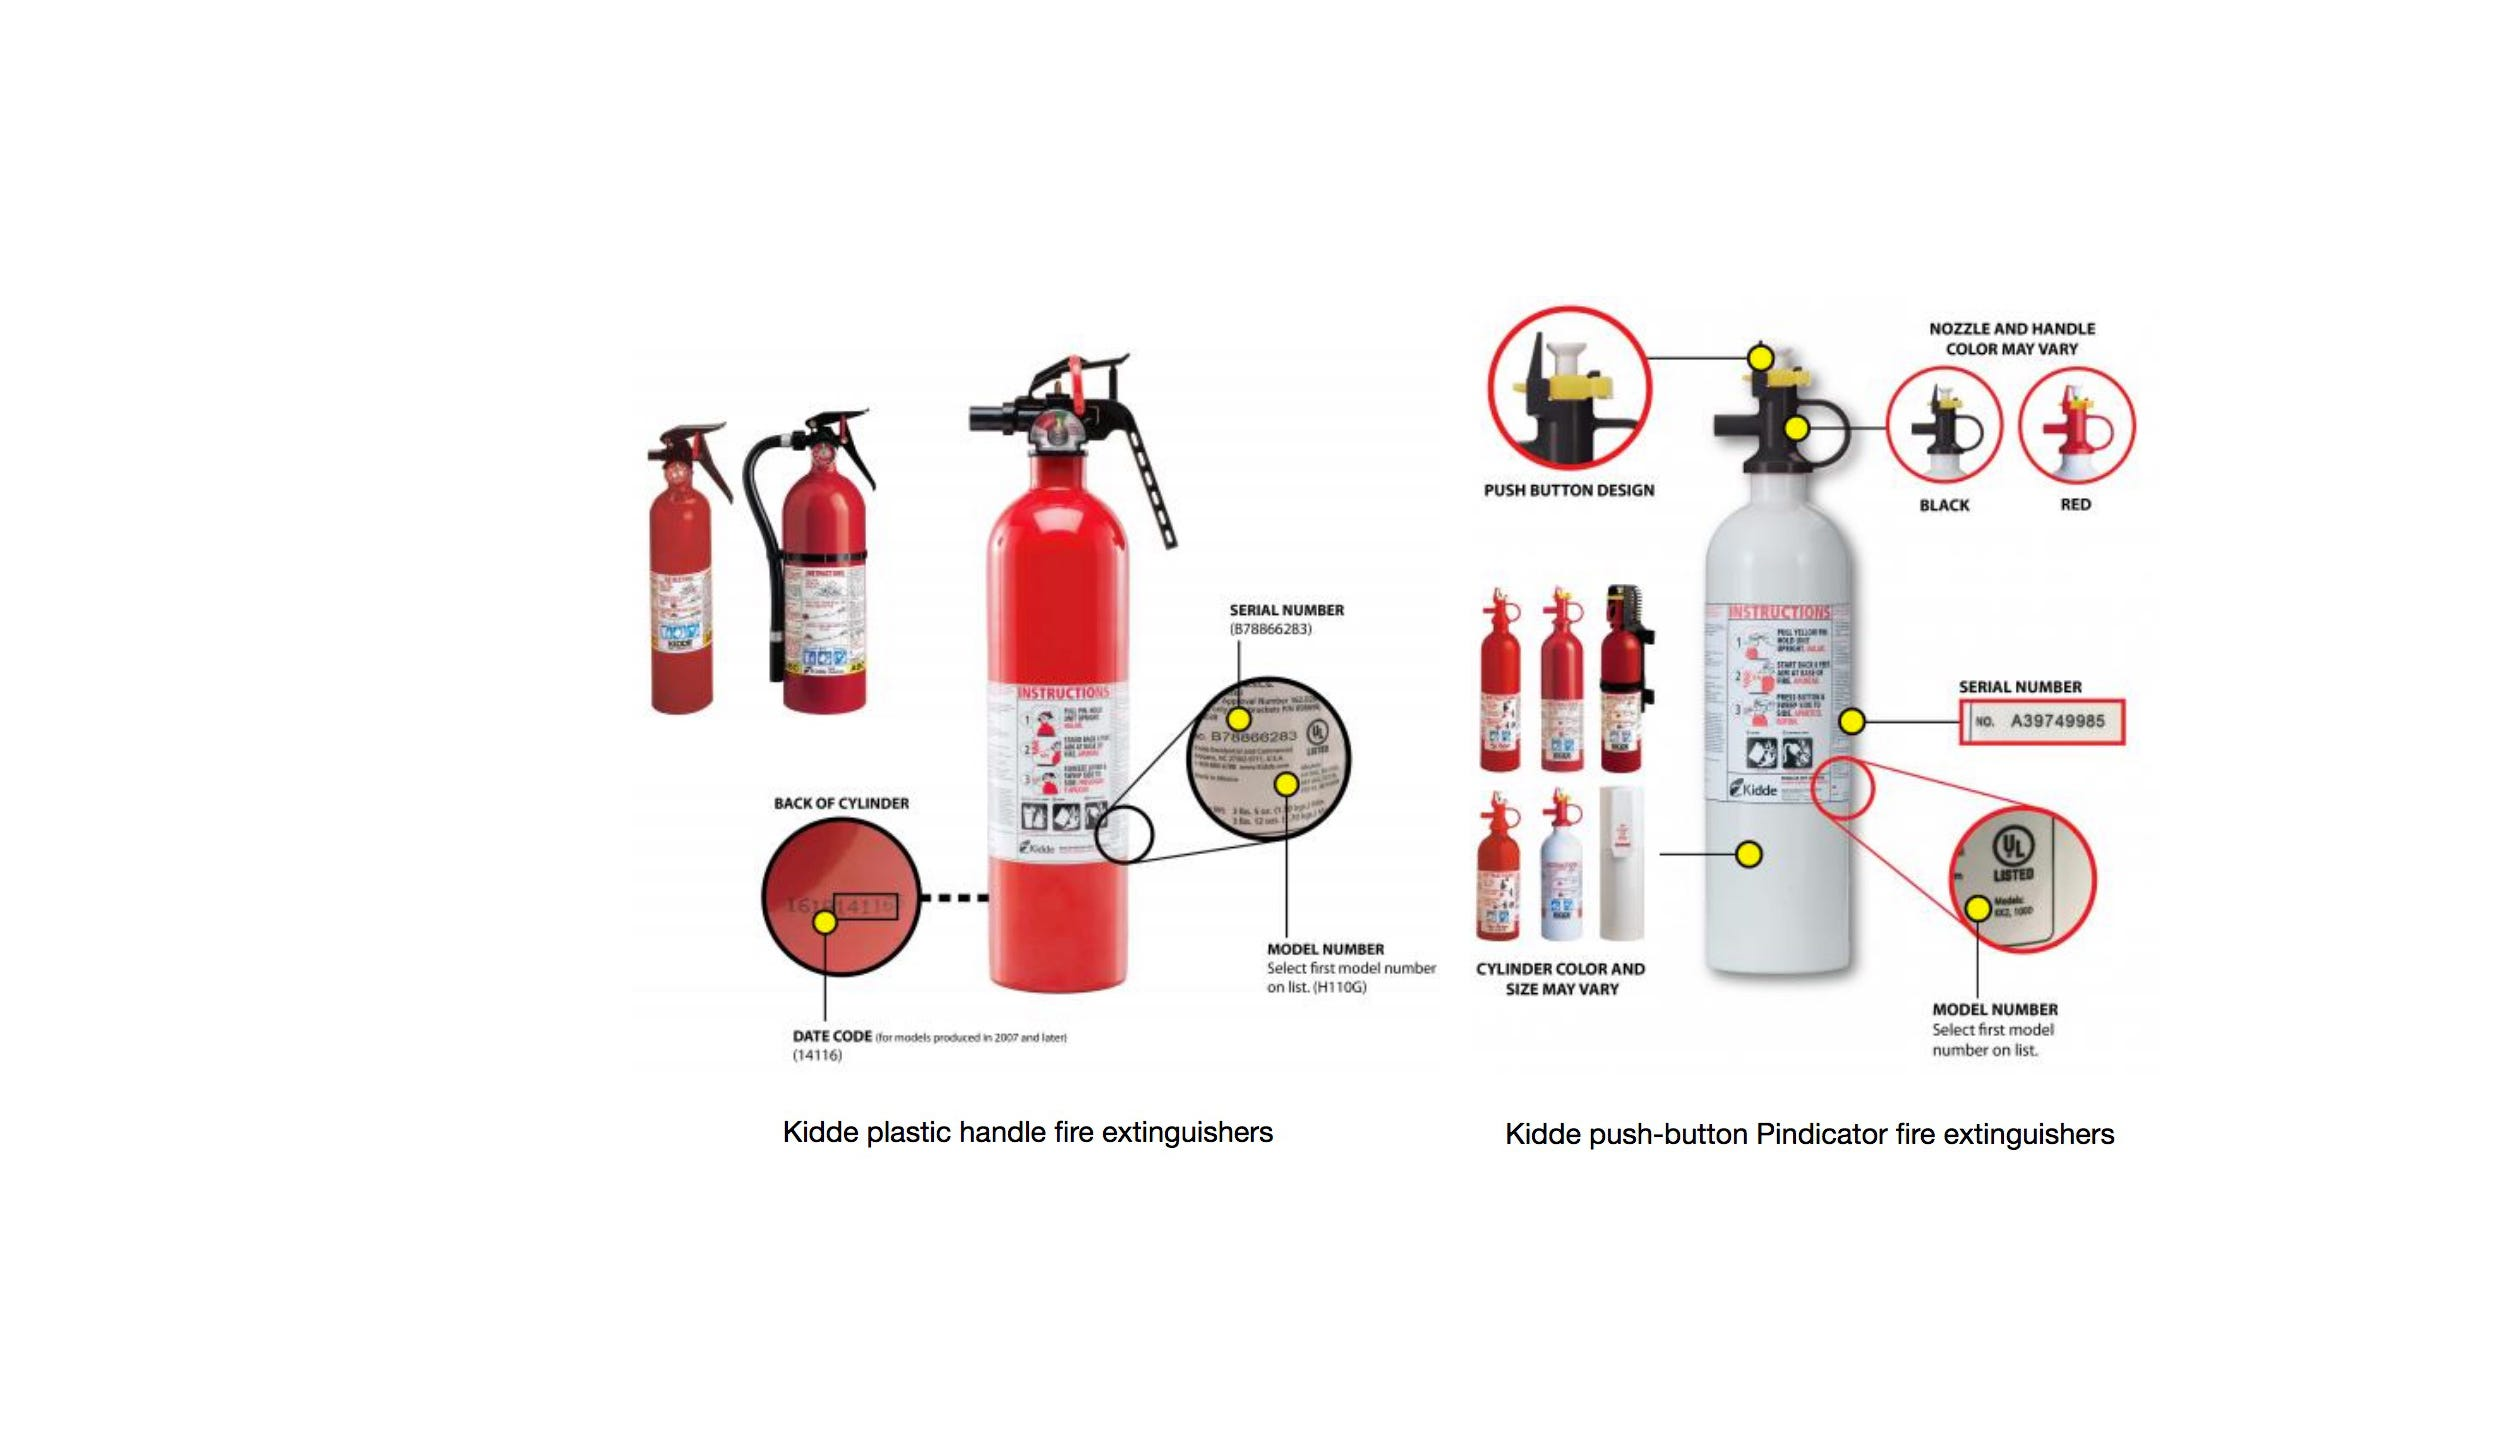 Kidde recall 40M fire extinguishers that may not work recalled